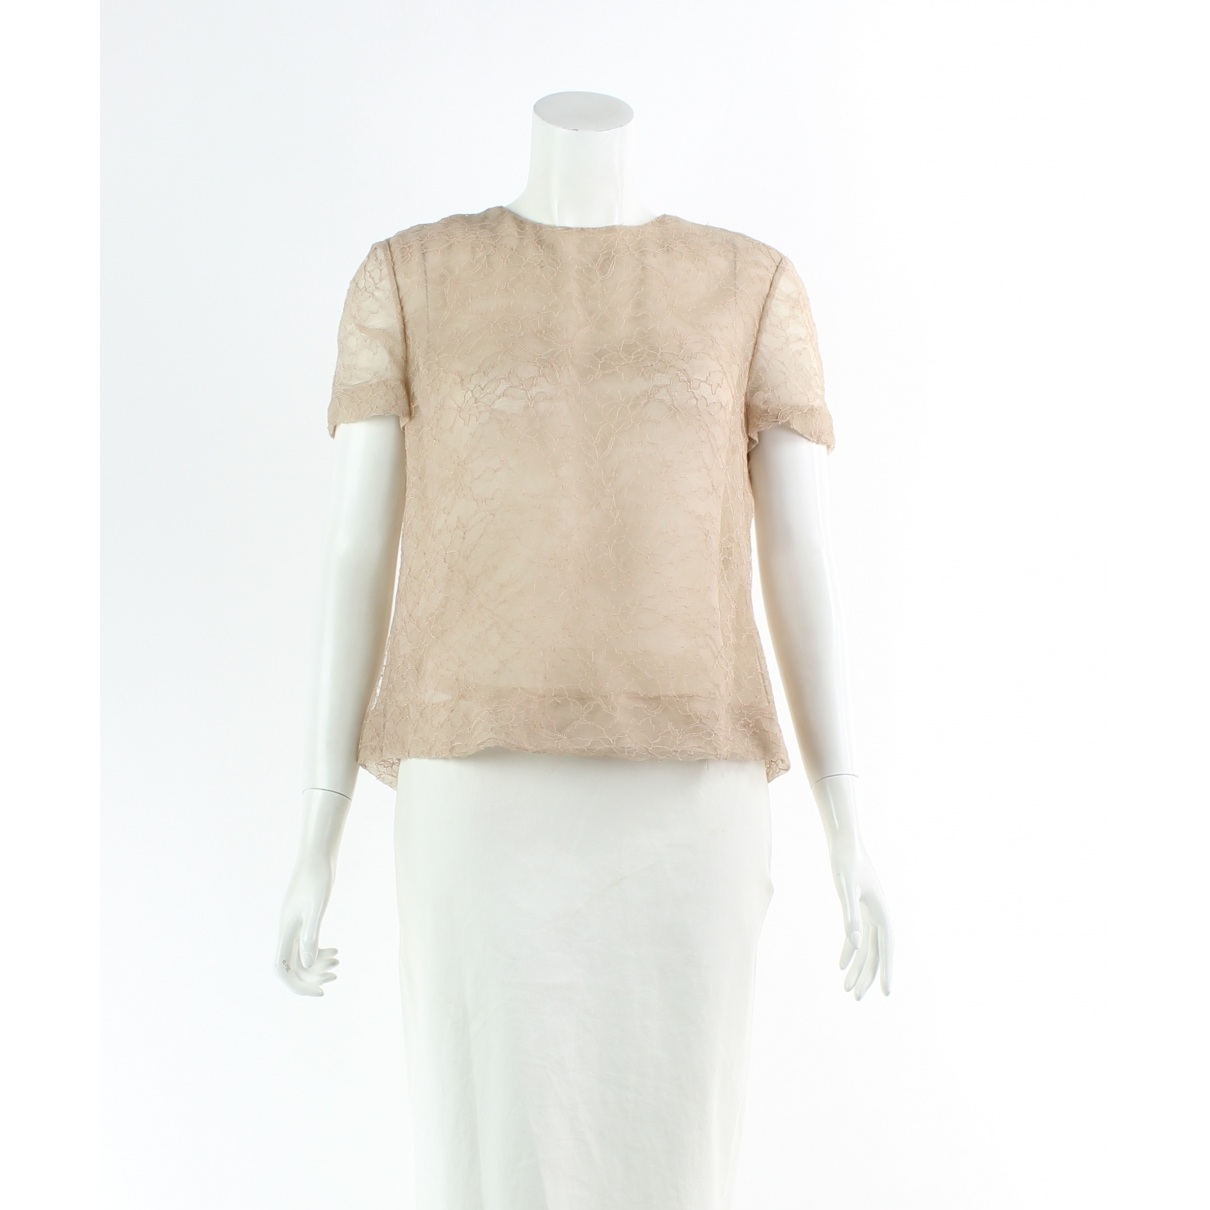 Chloé \N Beige  top for Women 38 FR